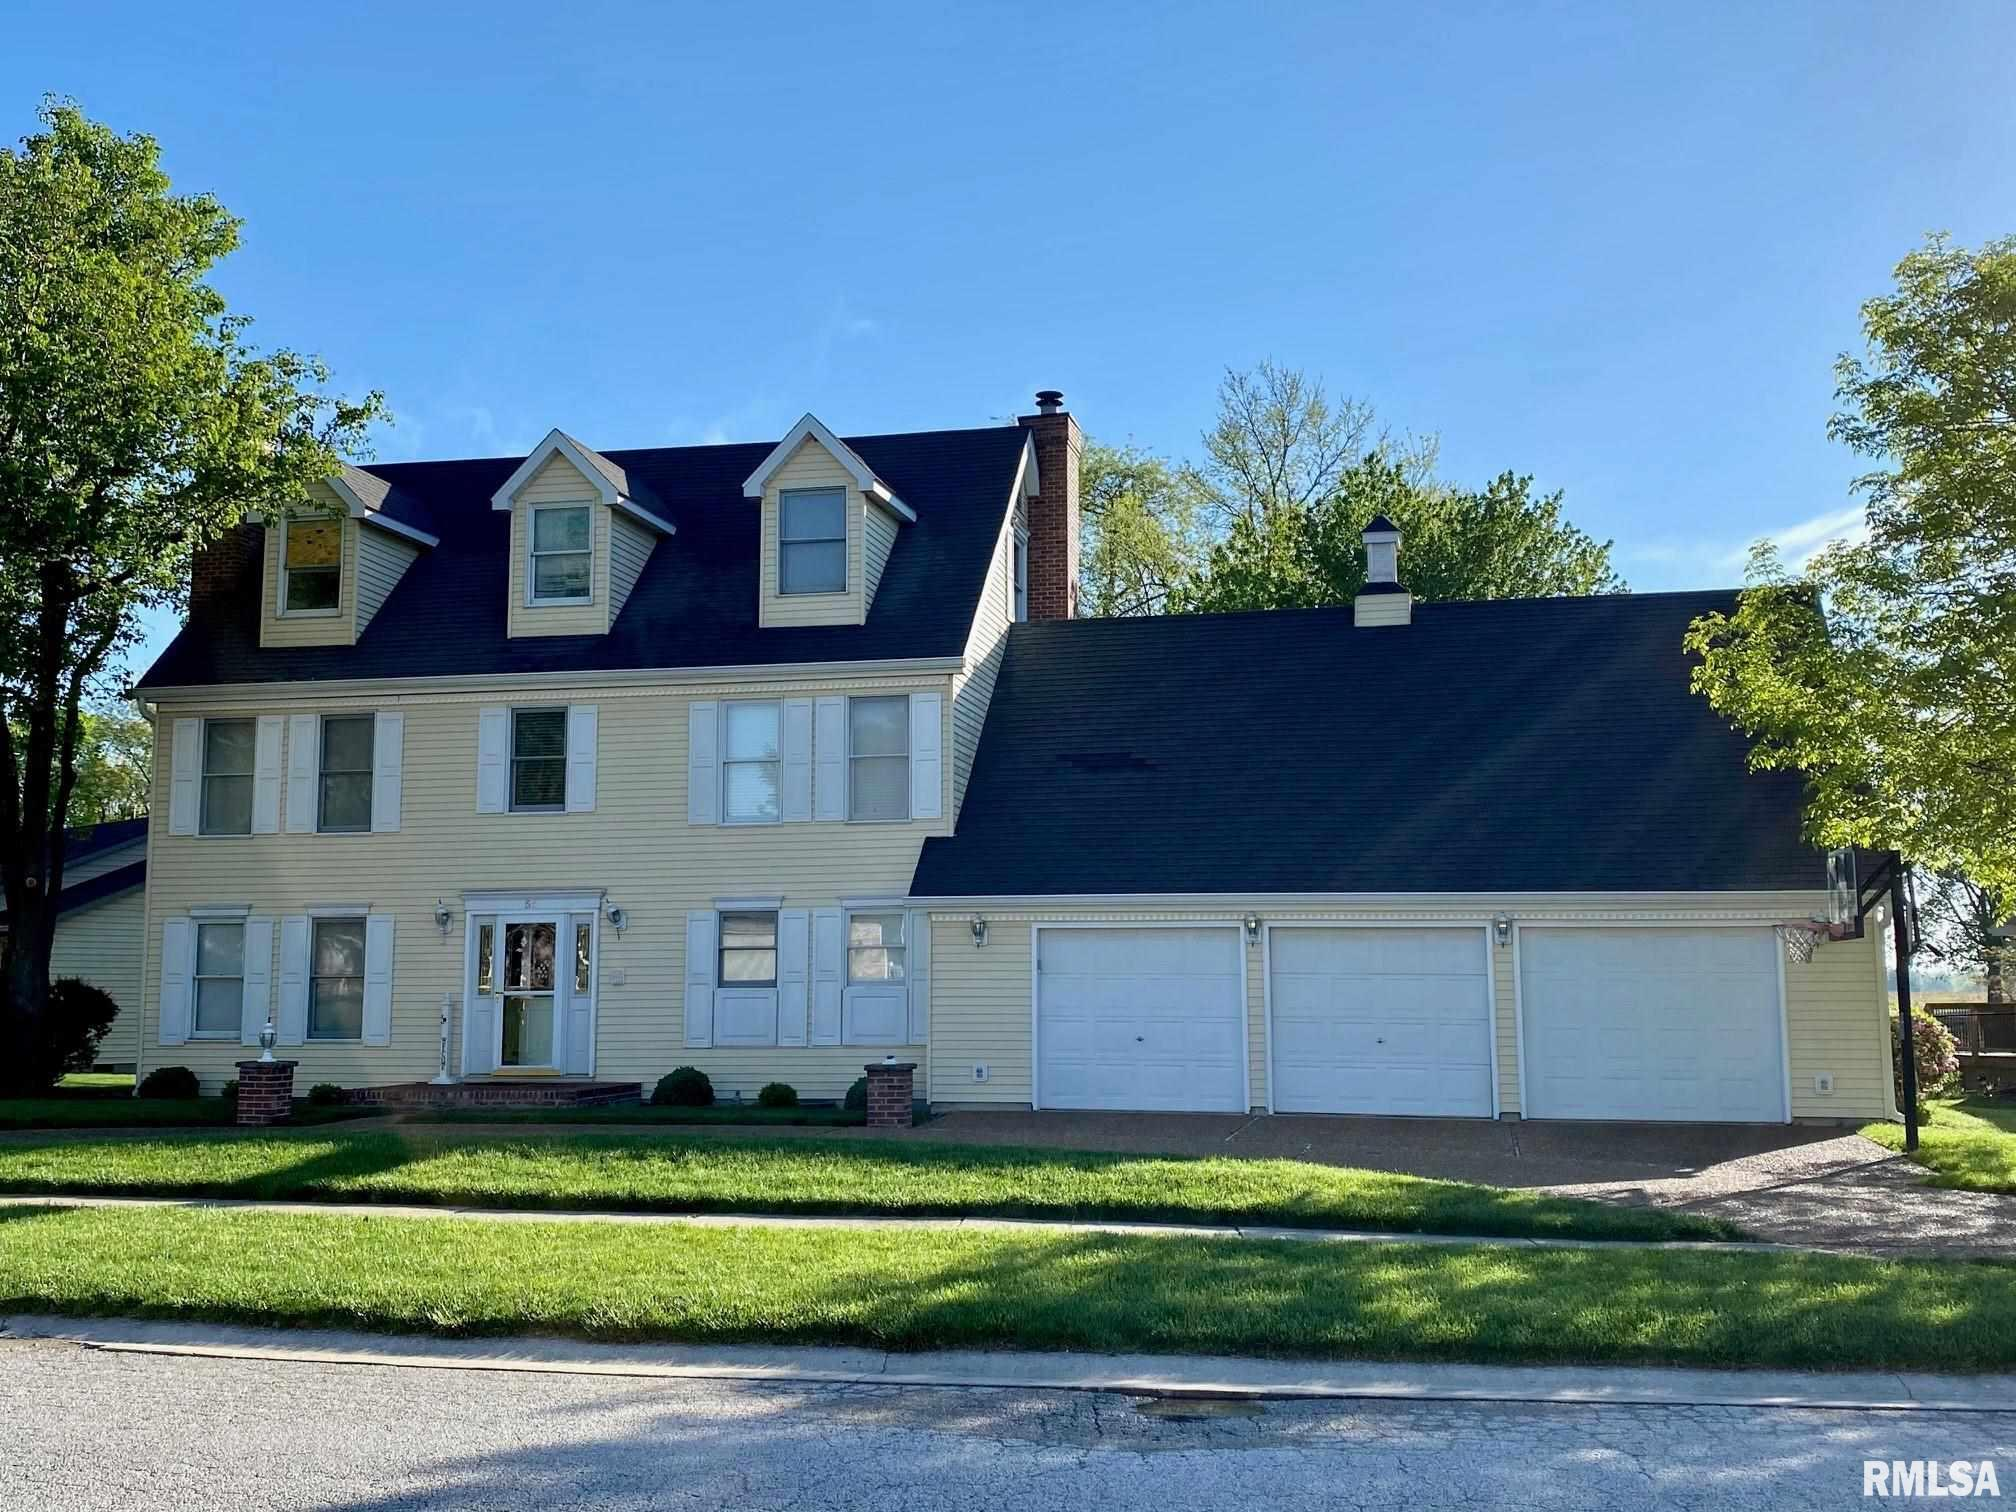 56 TAFT Property Photo - Rochester, IL real estate listing